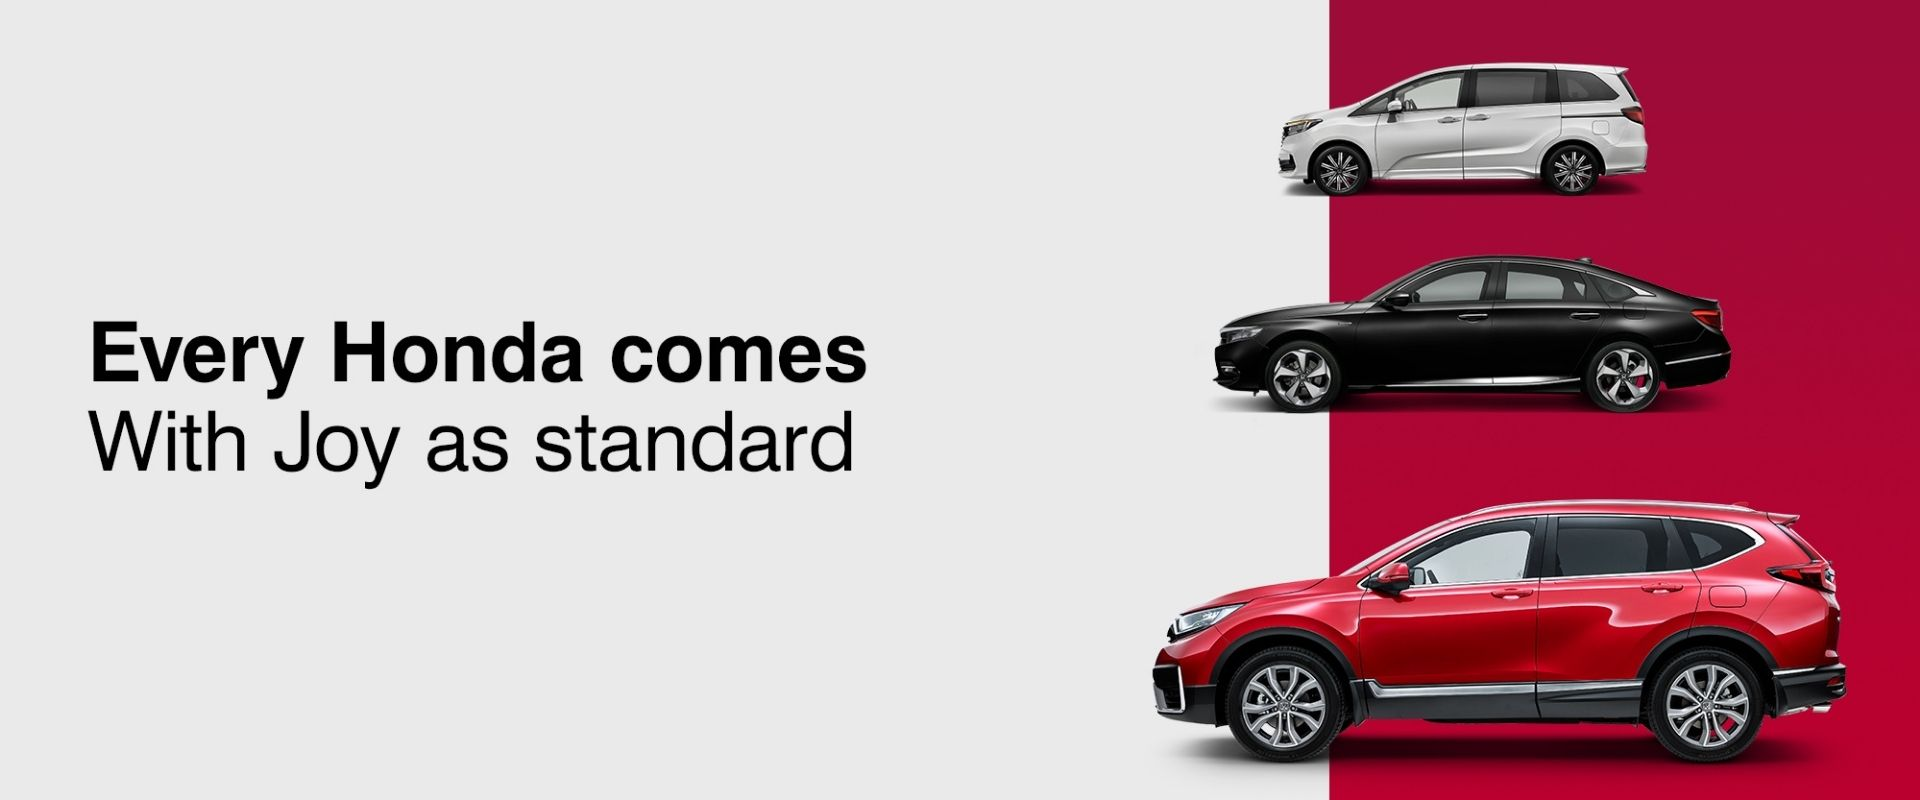 Every Honda comes with Joy as standard